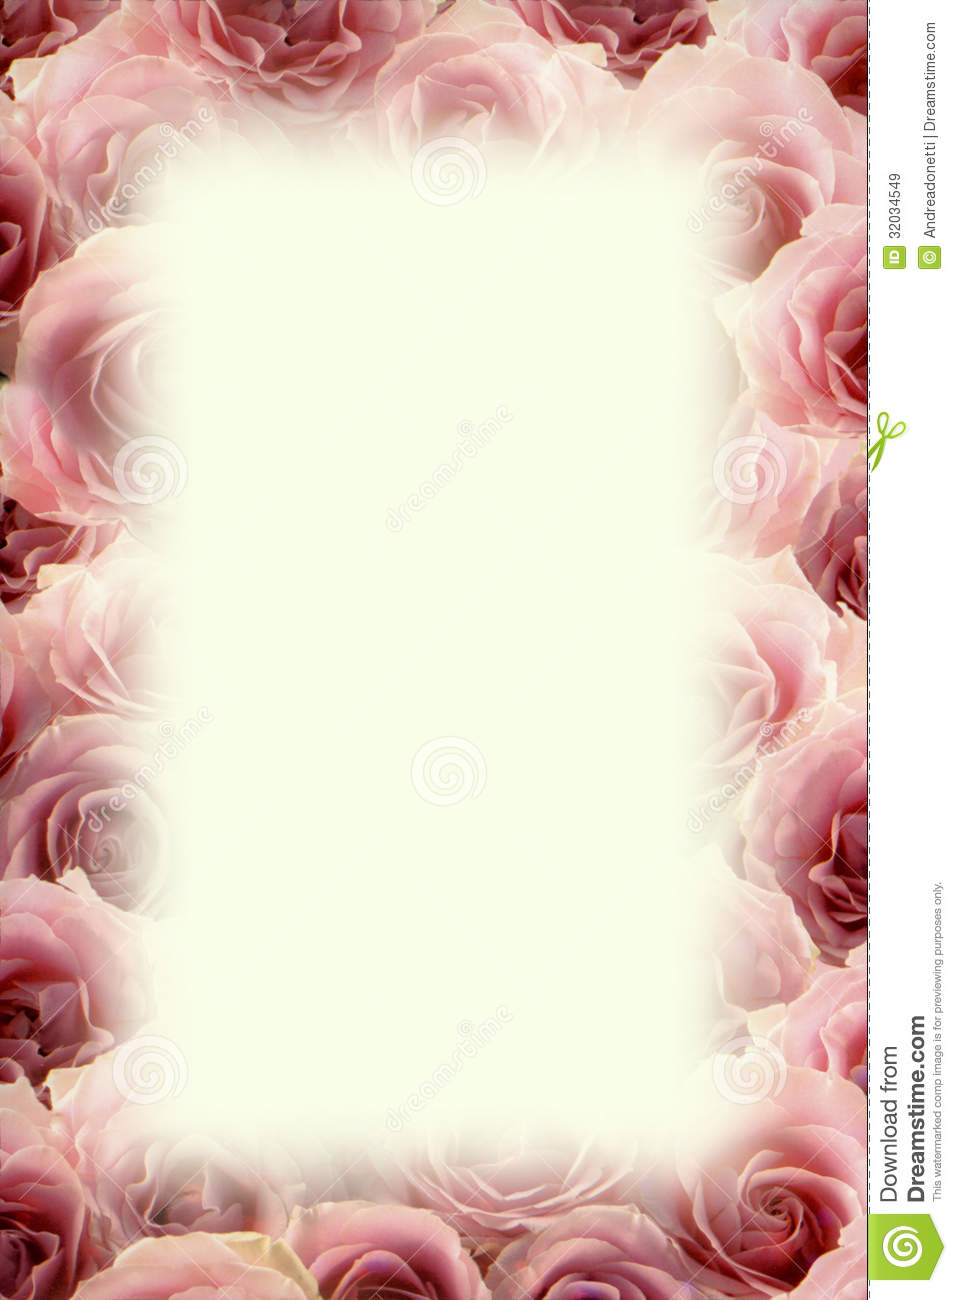 Frame of pink roses stock image. Image of delicate, flowers - 32034549